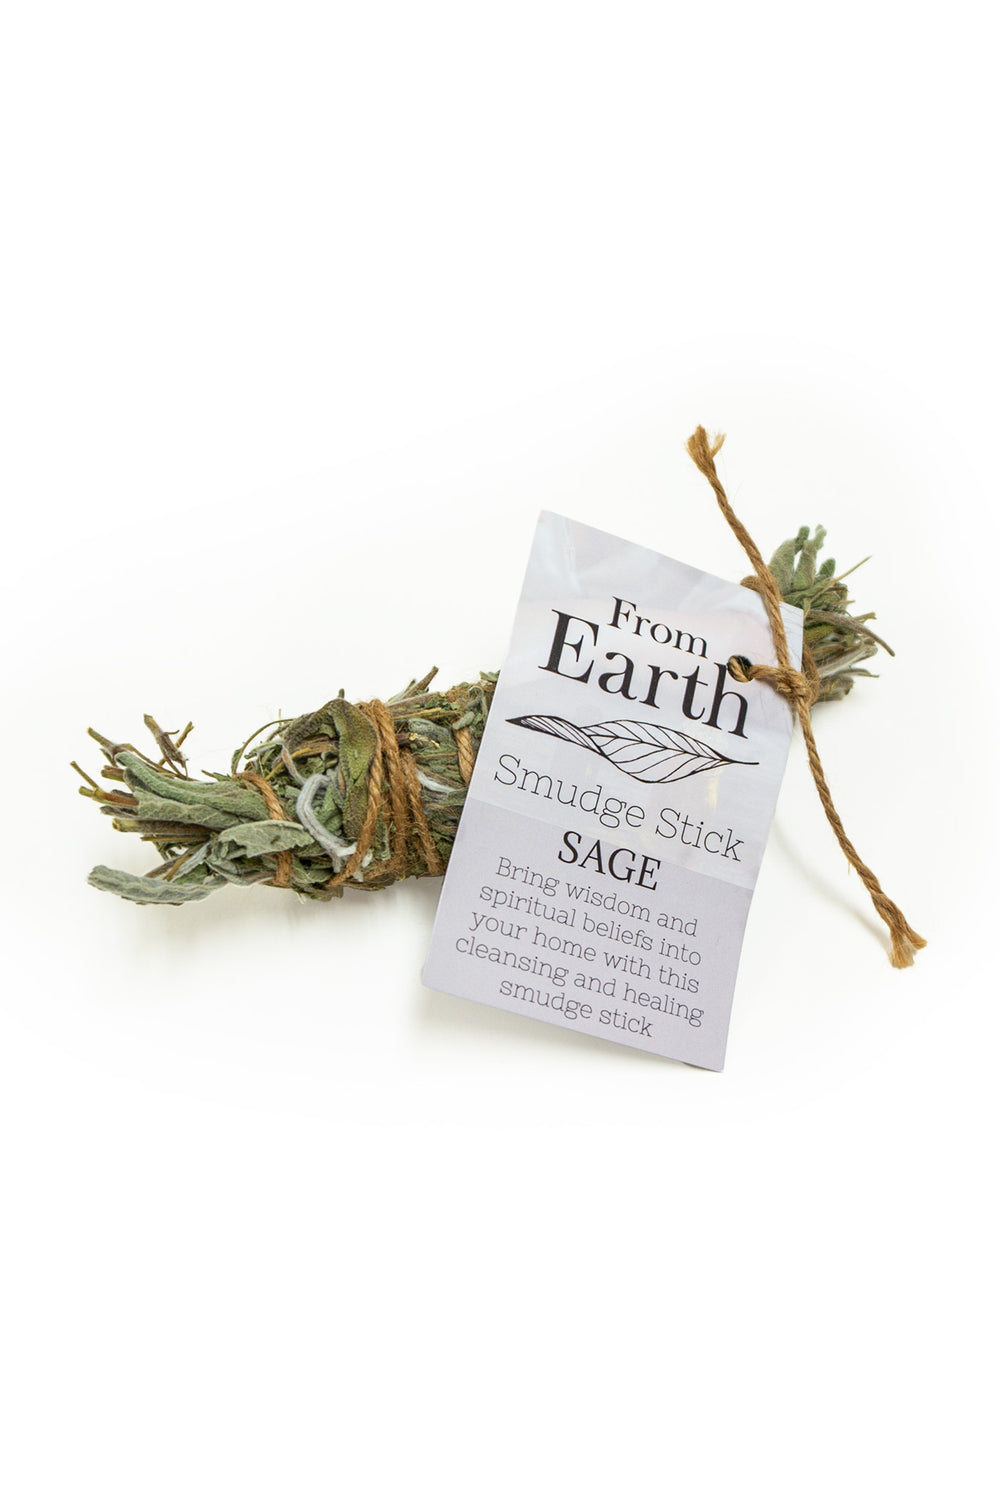 Earth Smudge Sticks - Organic White Sage Smudge sticks